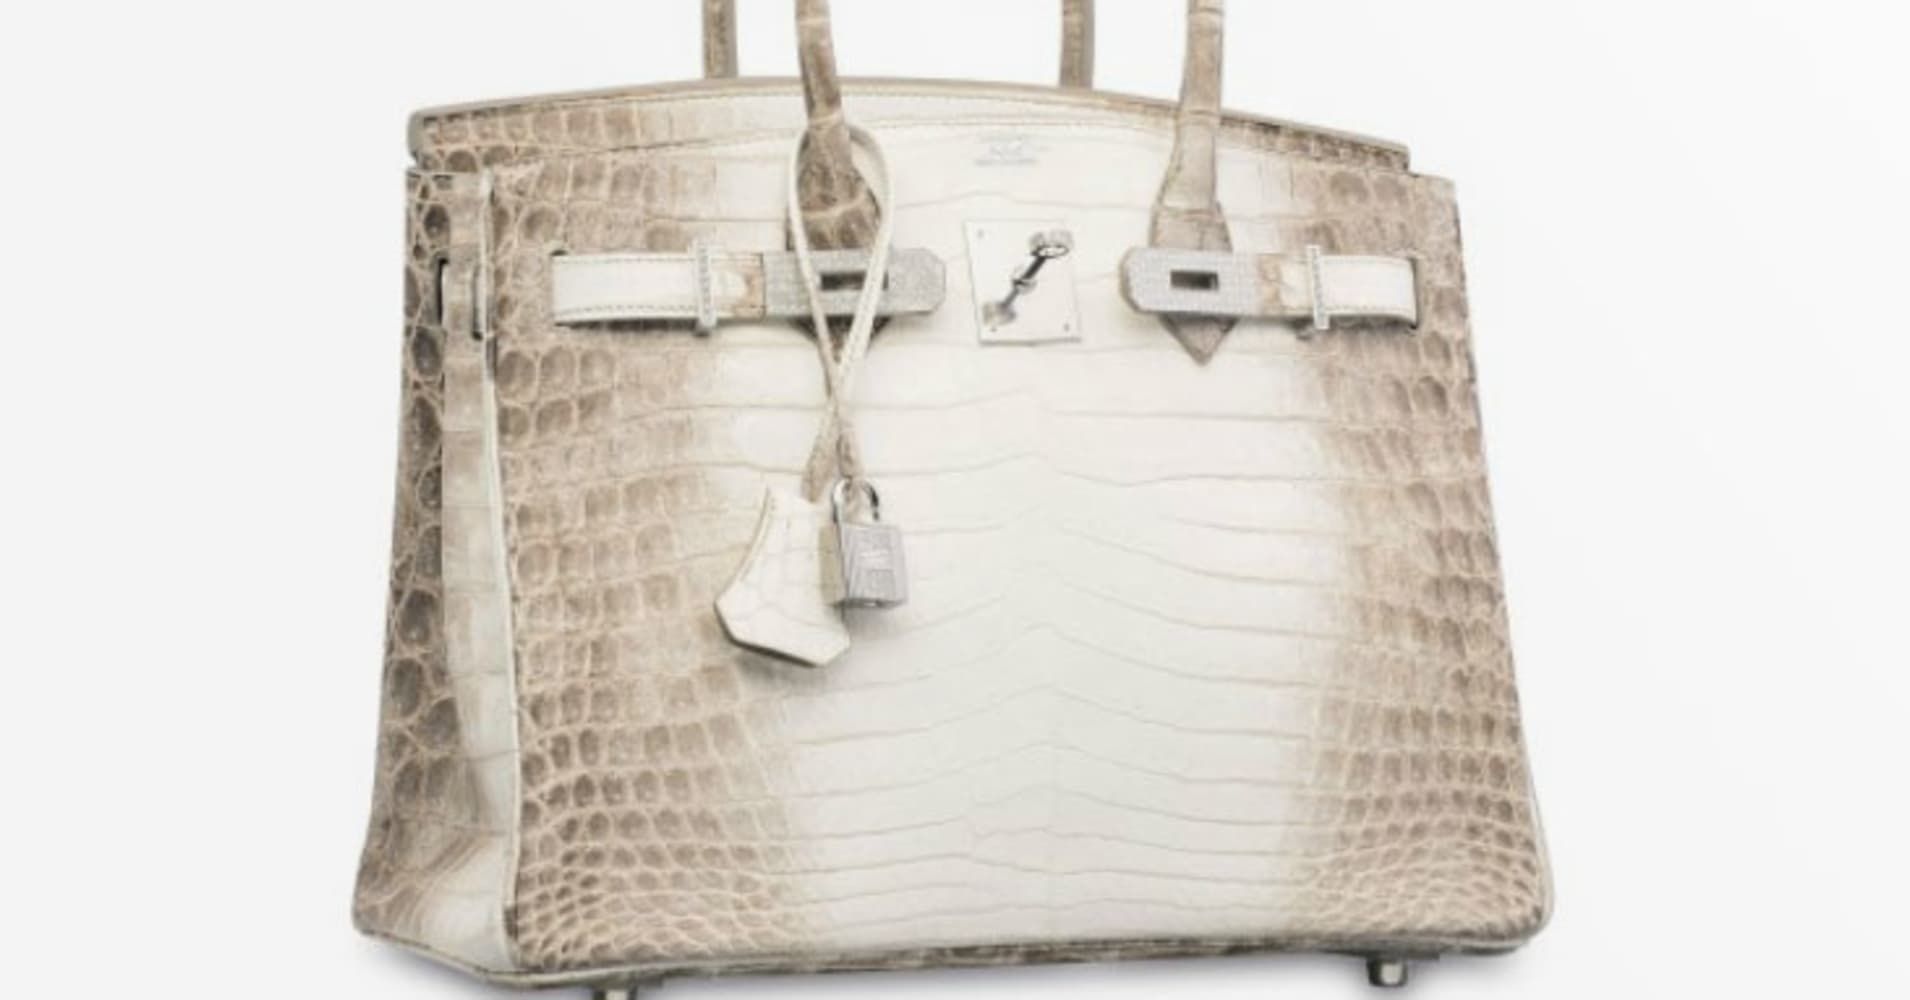 hermes bags online - $300,000 Birkin bag sets new price record